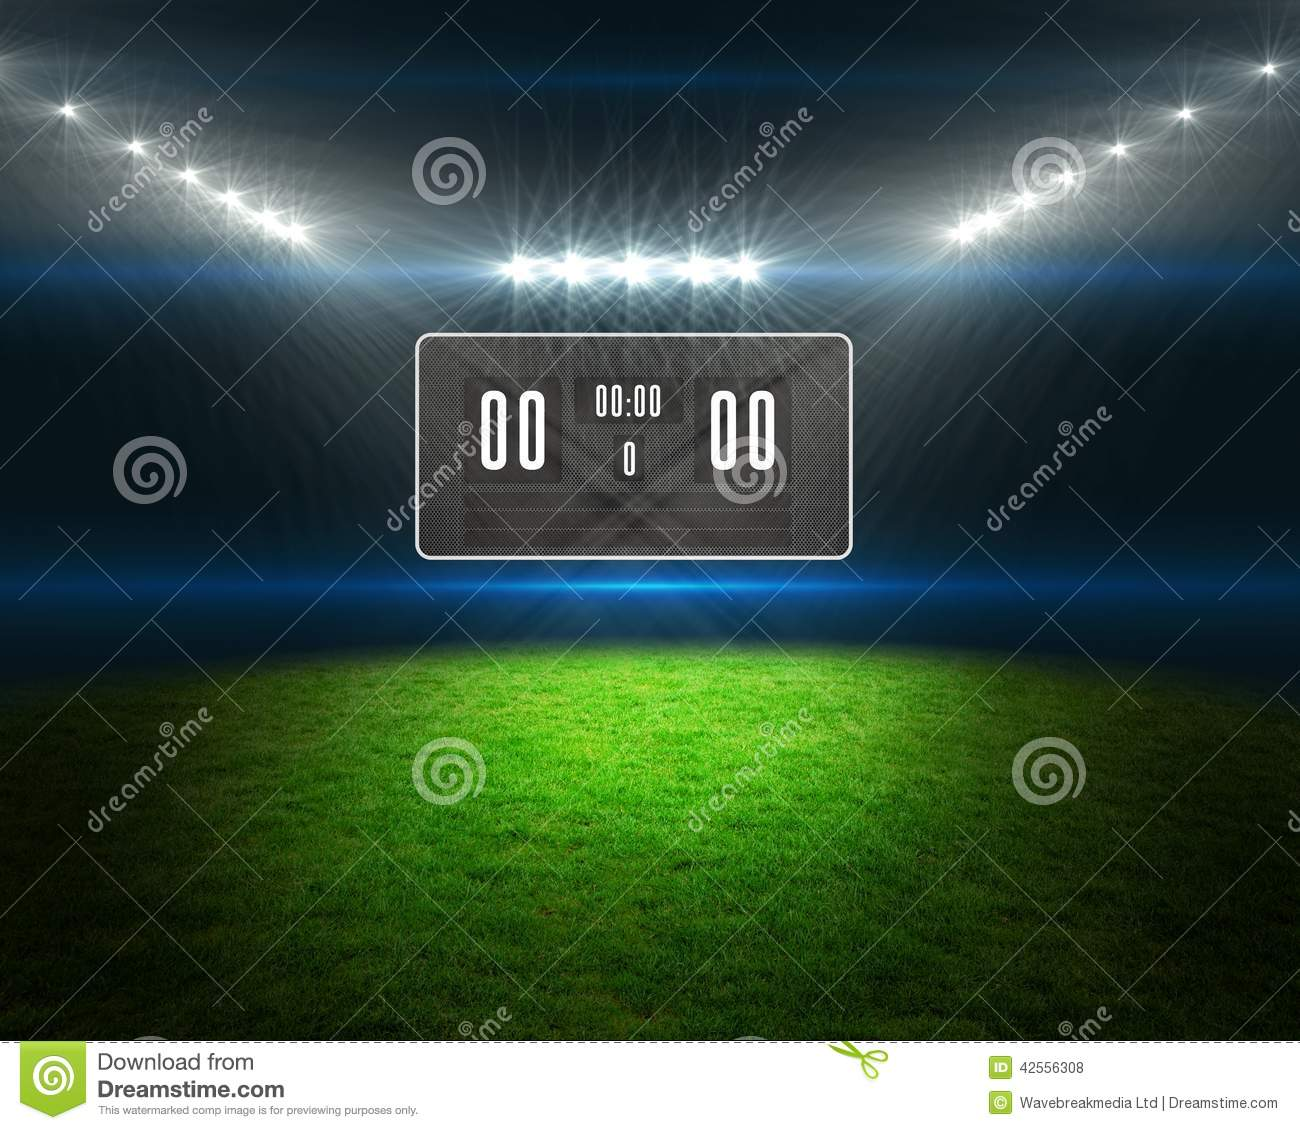 Football pitch with scoreboard